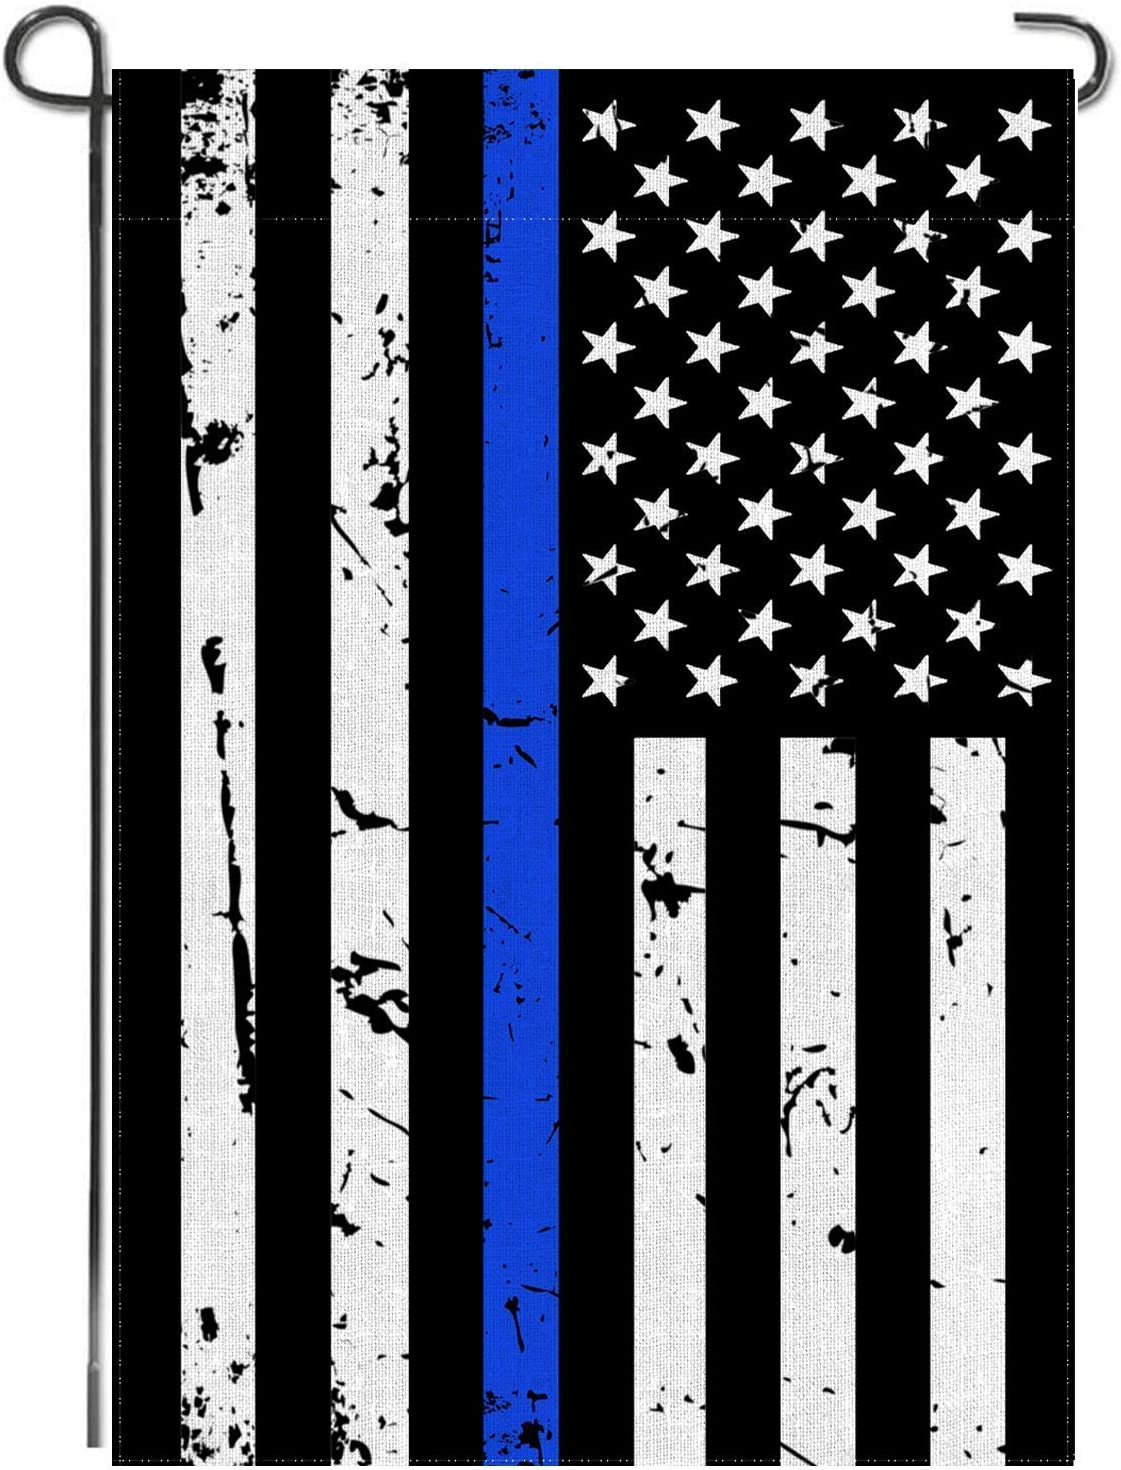 Probsin Thin Blue Line Garden Flag American Double Sided US Police Flag Honoring Law Enforcement Officers Outdoor Yard Lawn Banner Decoration 12.5 x 18 Inch